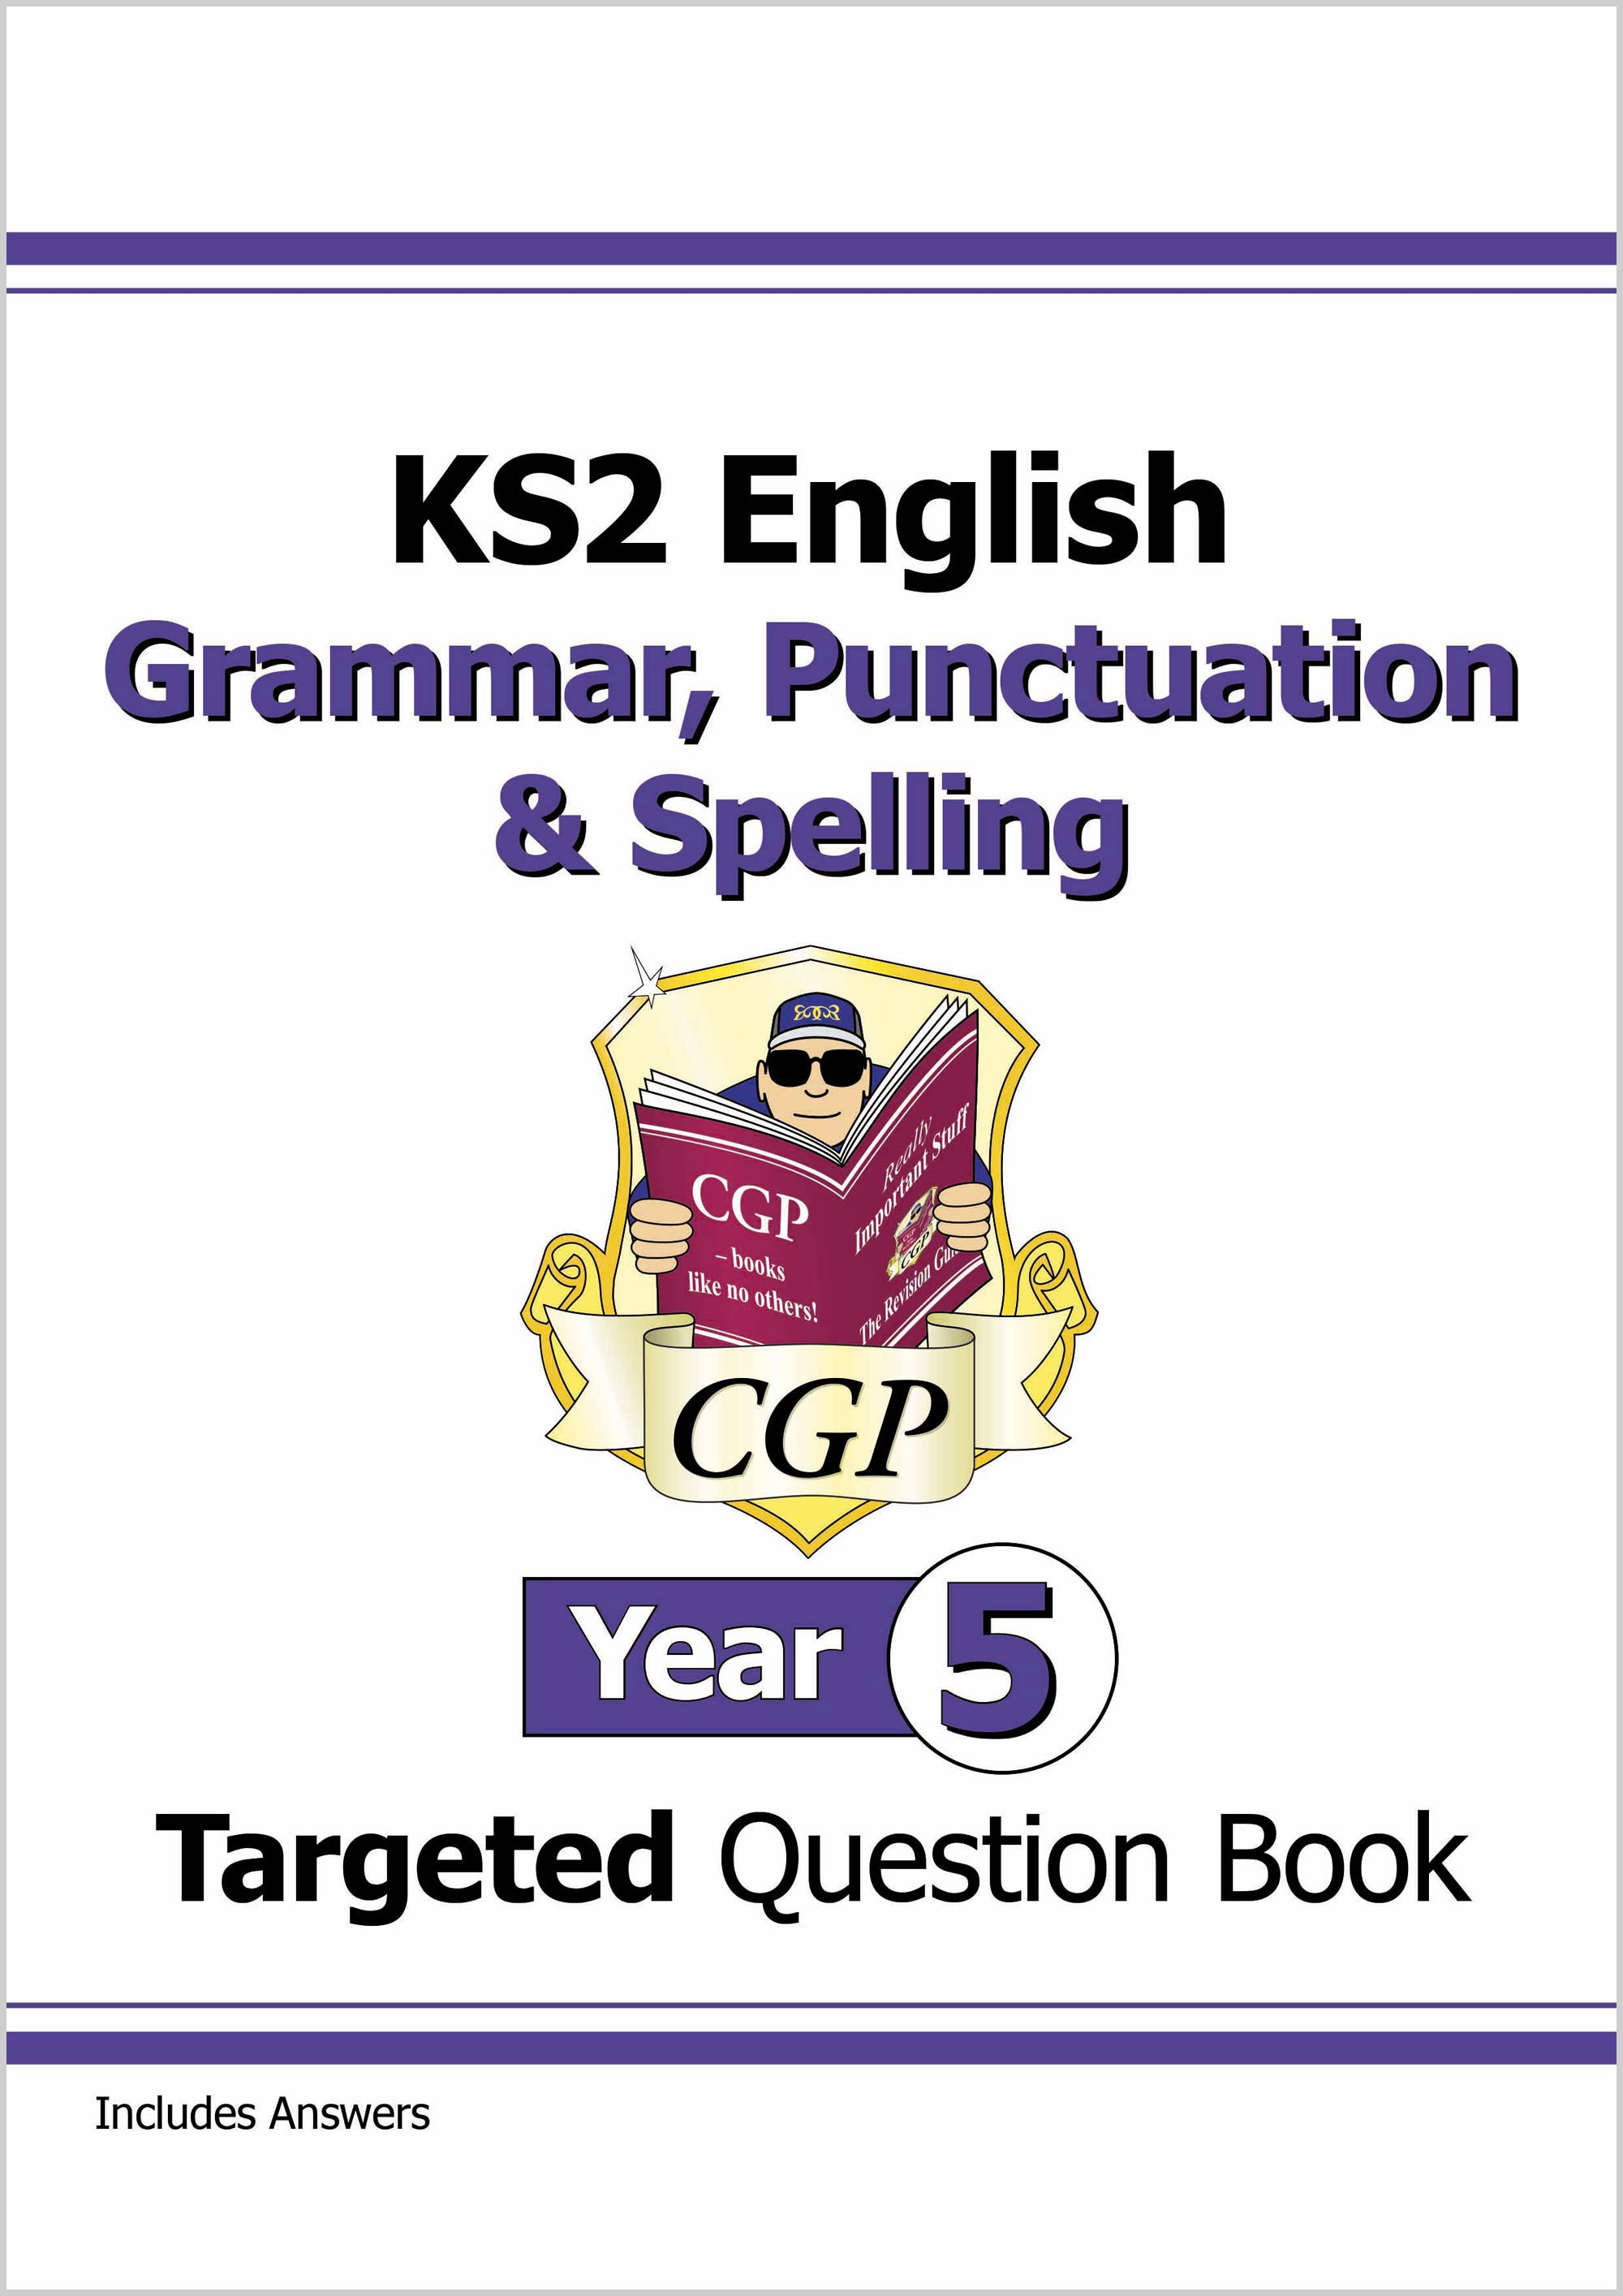 E5W22D - KS2 English Targeted Question Book: Grammar, Punctuation & Spelling - Year 5 Online Edition